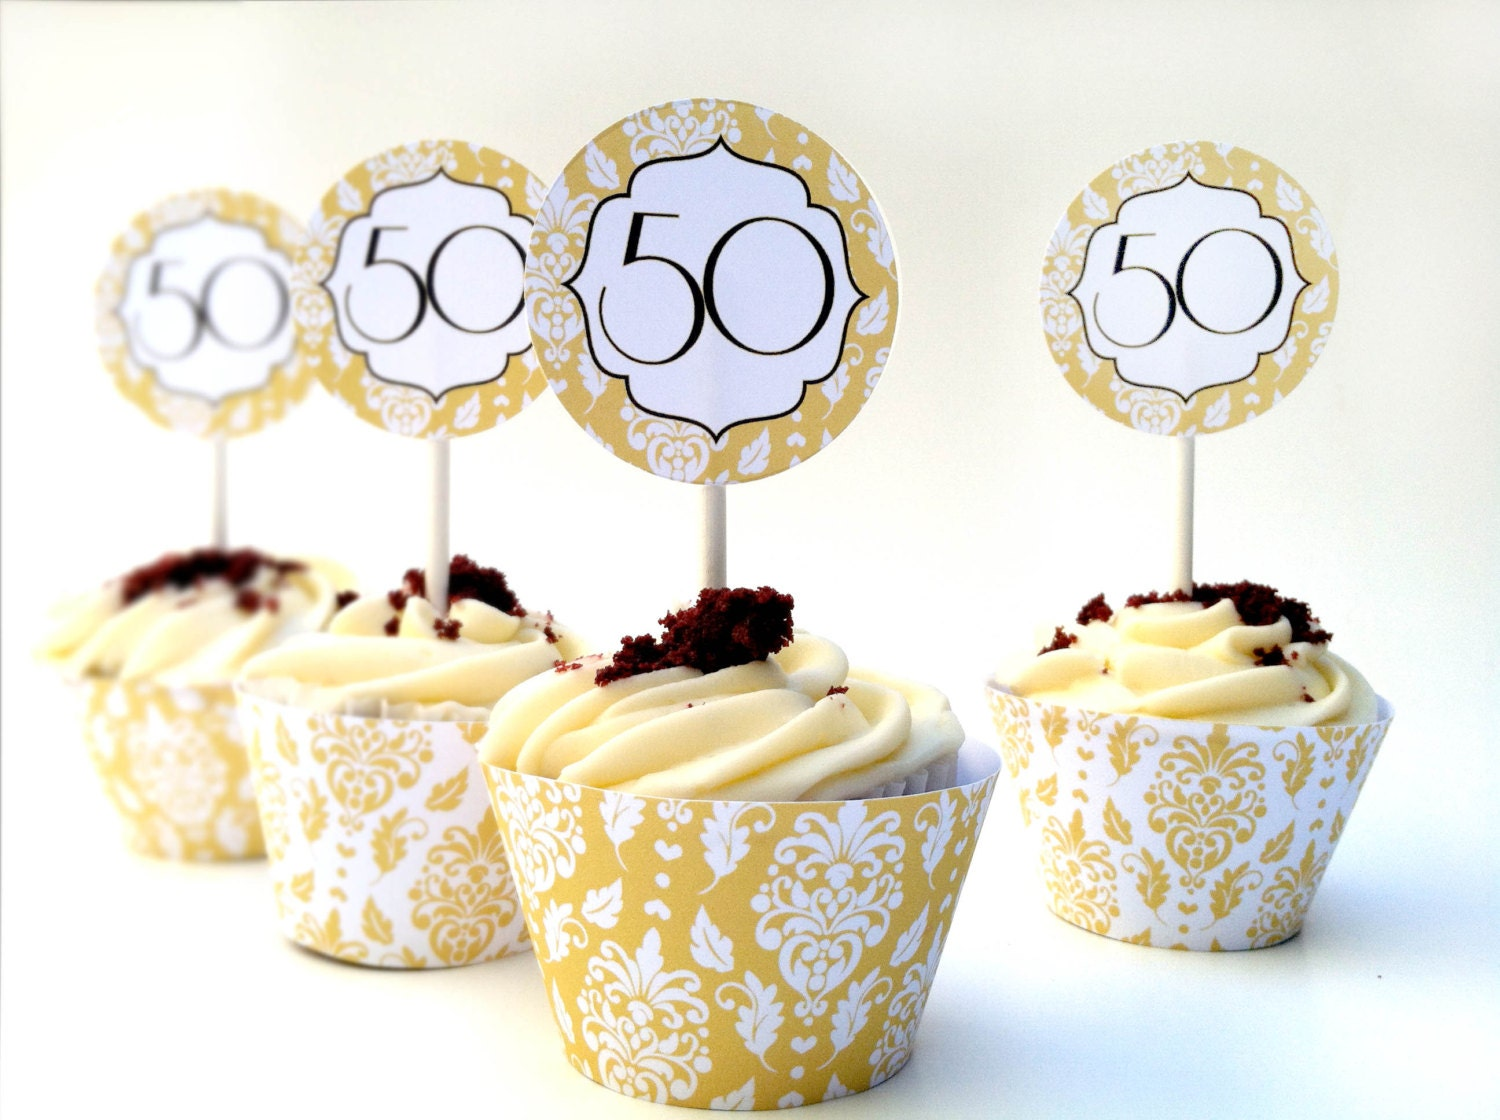 Instant download 50th anniversary diy cupcake decorations for 50th anniversary decoration ideas